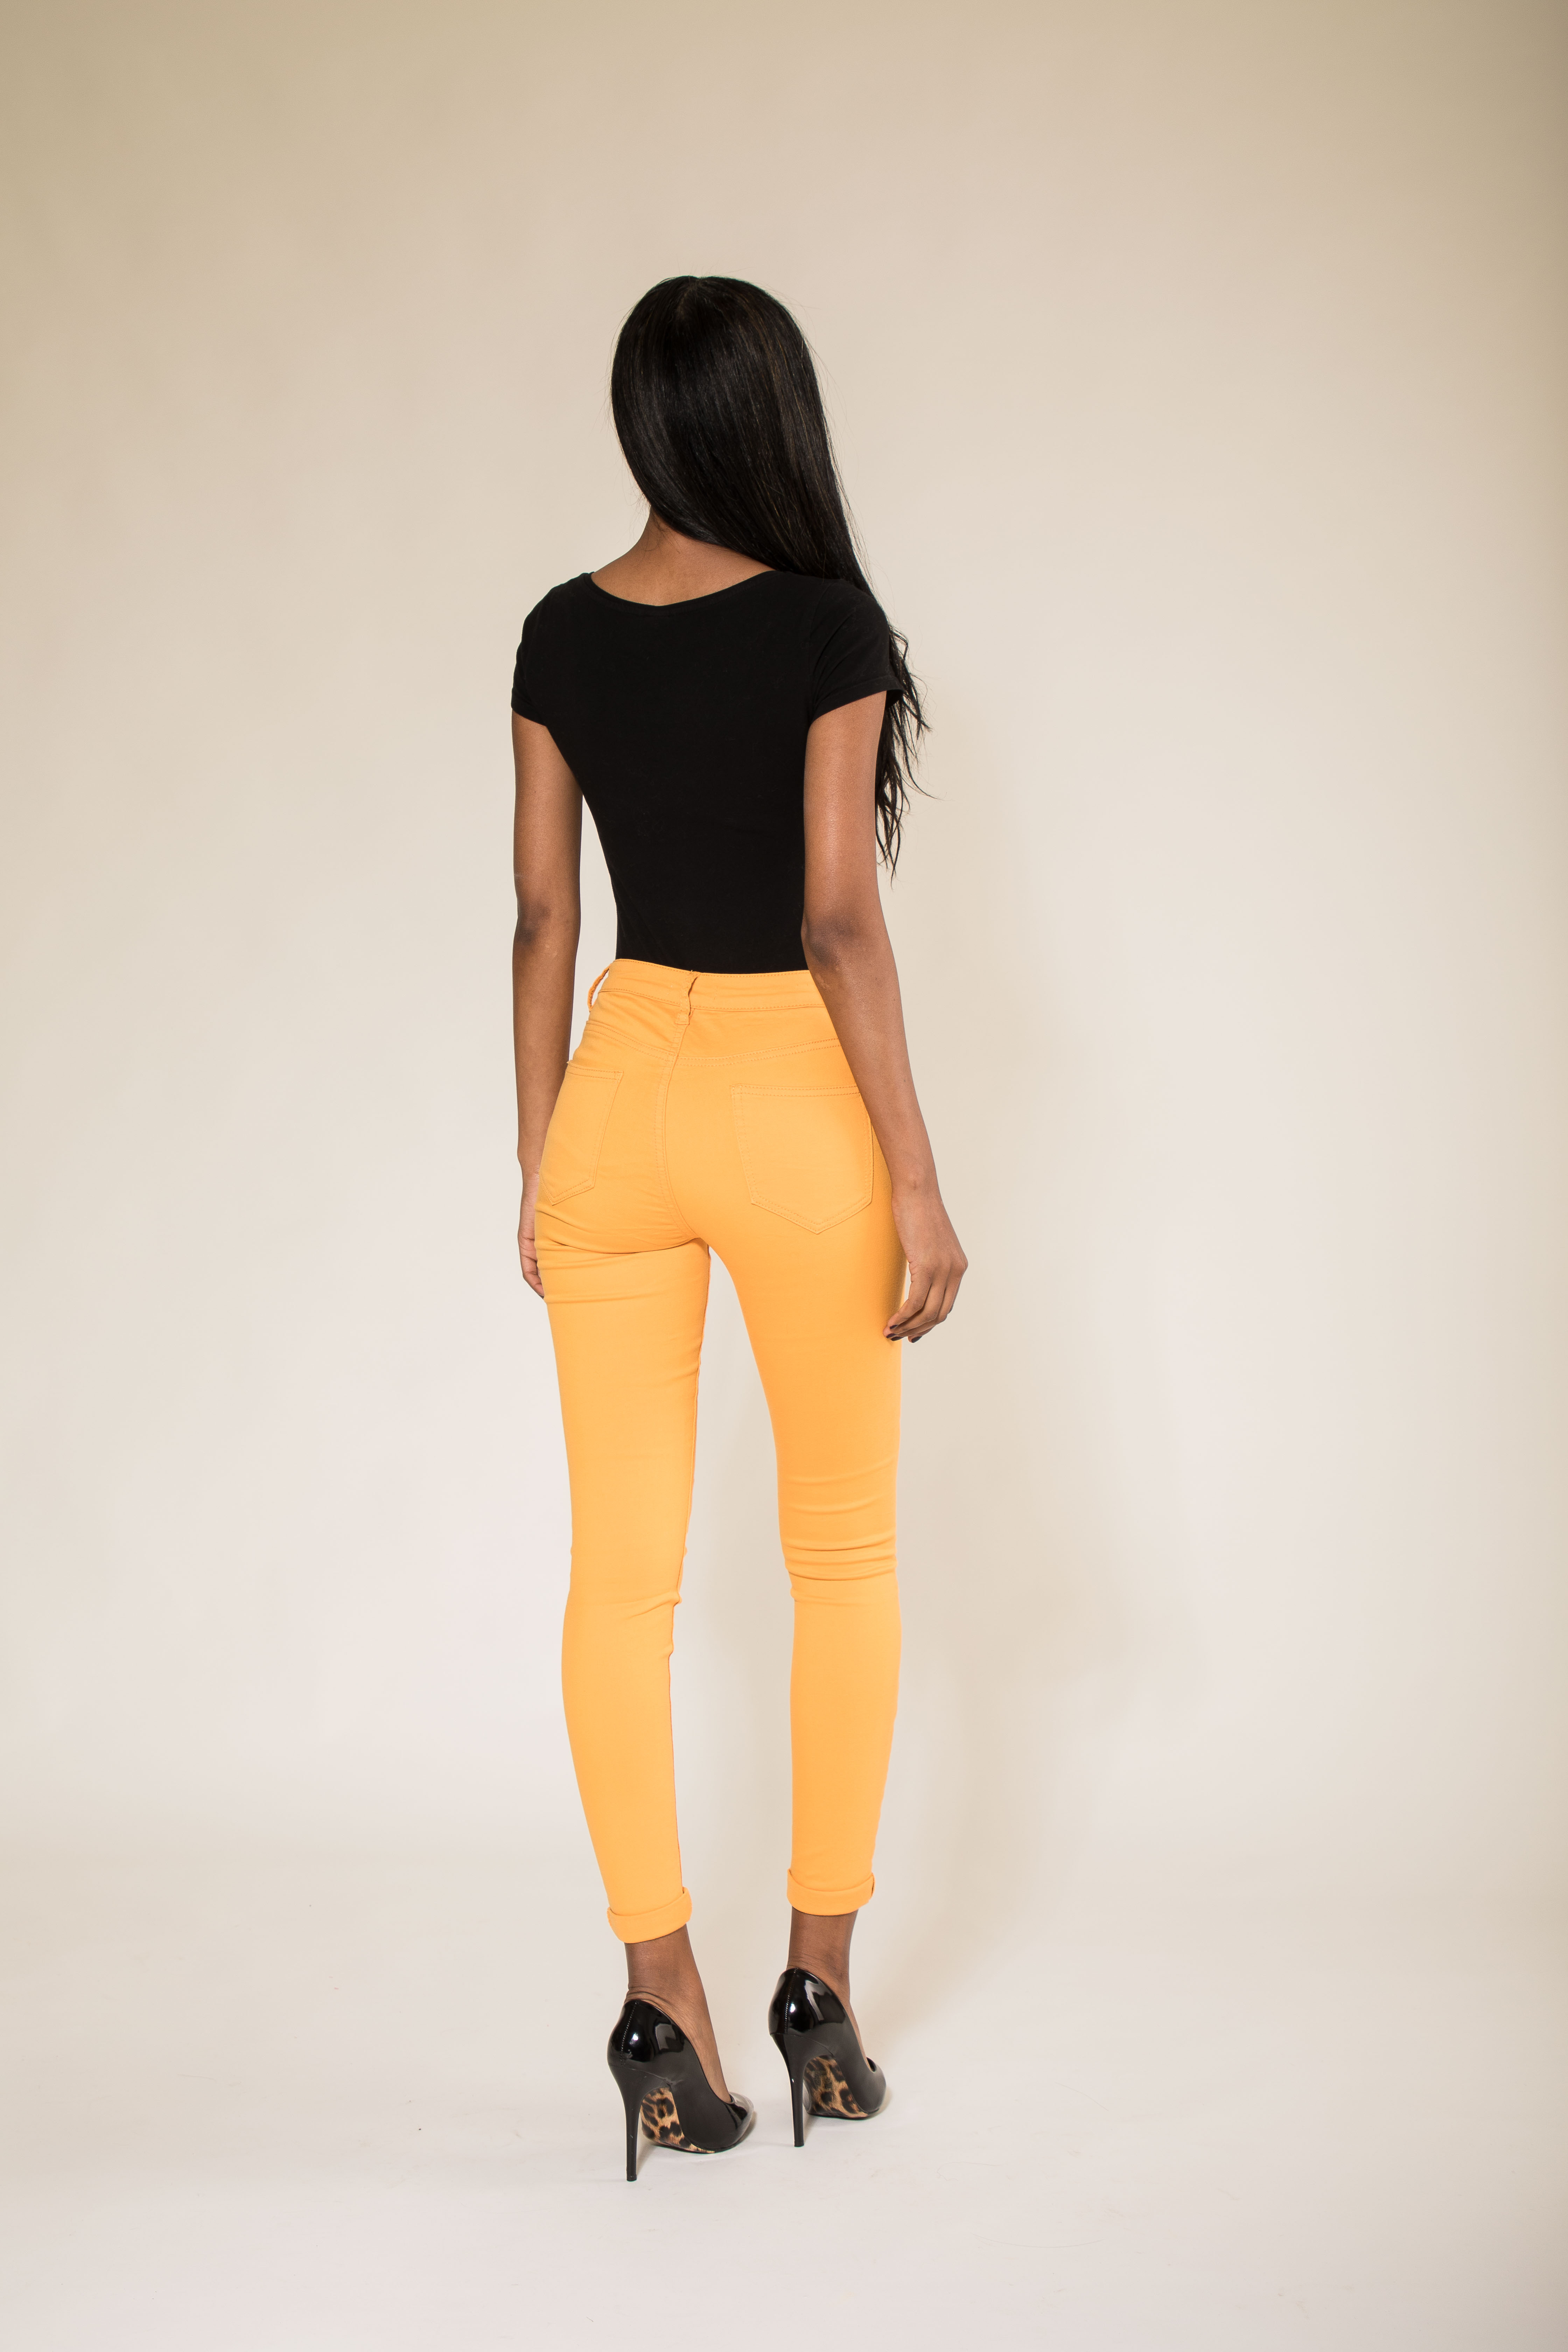 Women-High-Waisted-Jeans-Ladies-Coloured-Stretchy-jeggings-Pants-Size-6-14 thumbnail 11